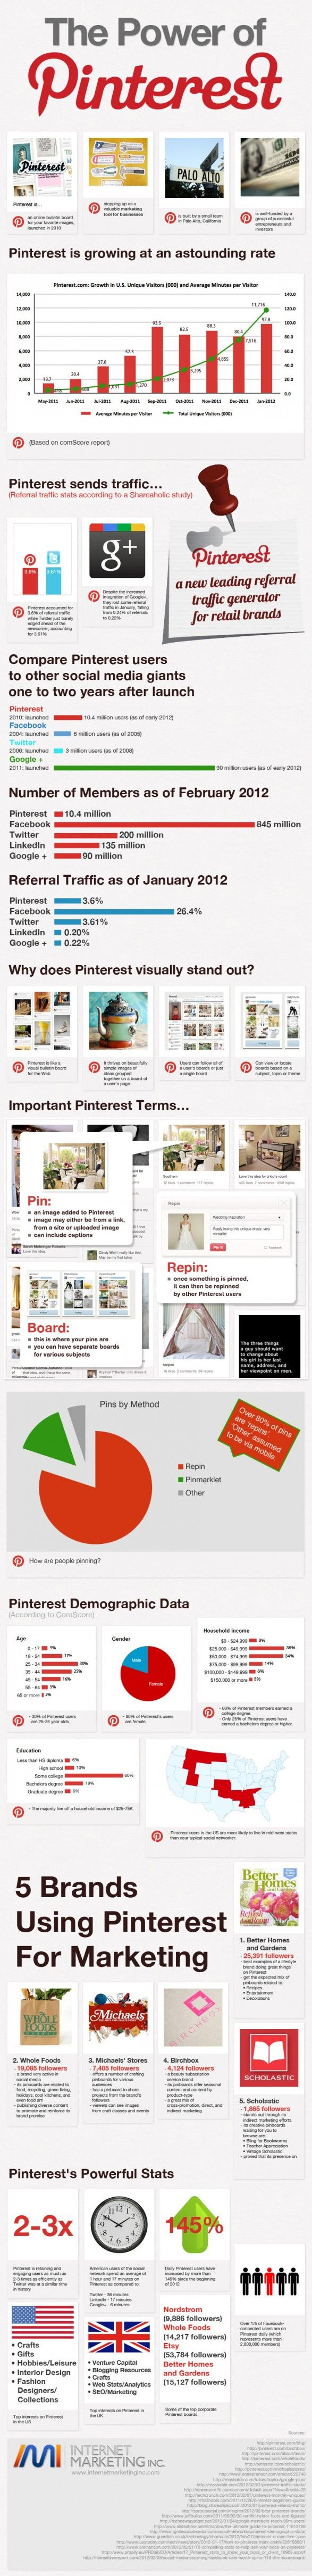 Infographic: The Power of Pinterest